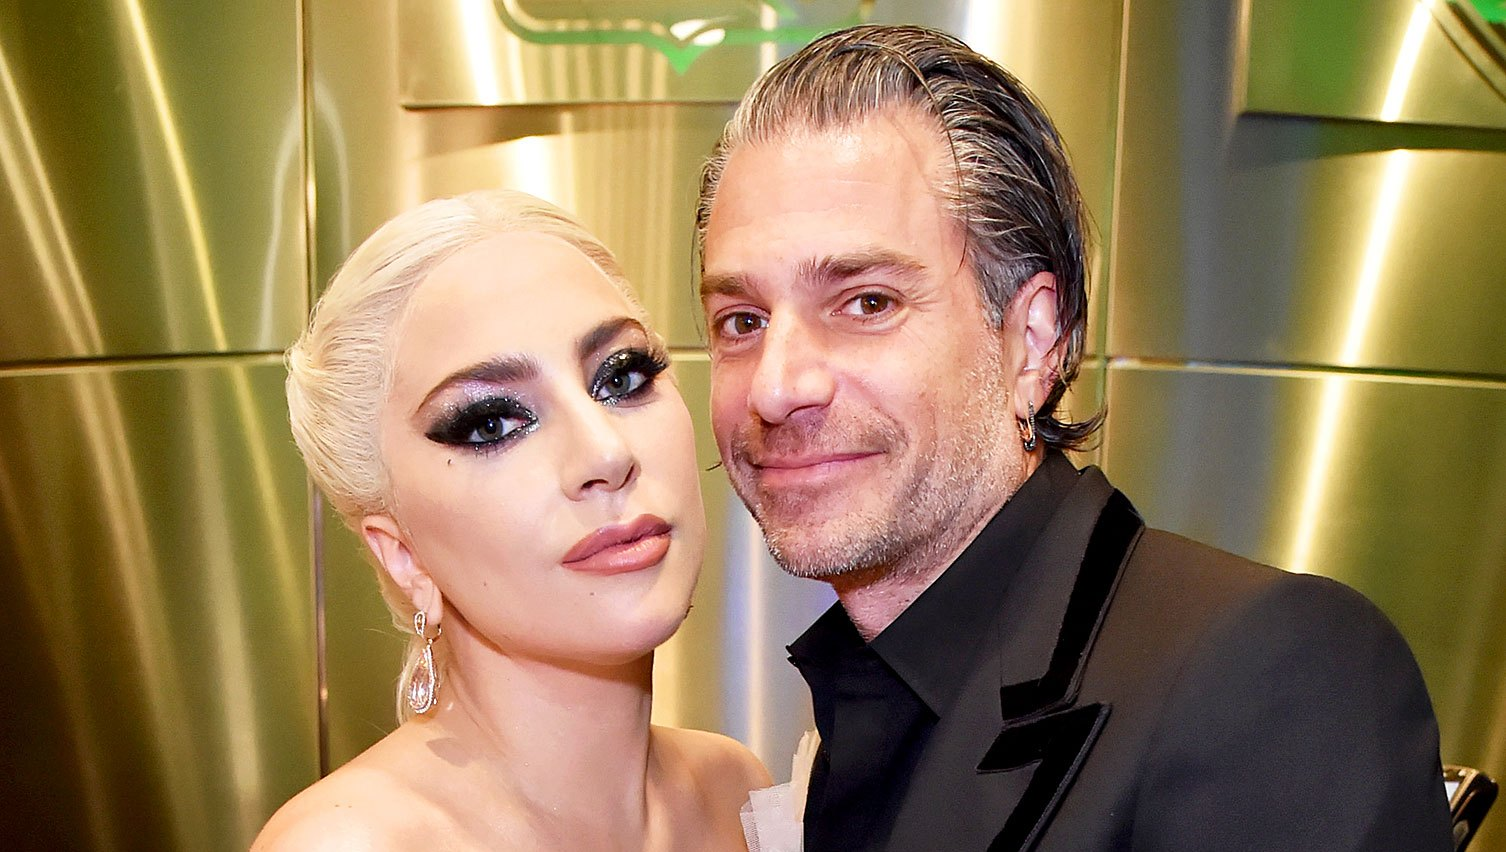 Lady Gaga and Christian Carino backstage at the 60th Annual Grammy Awards at Madison Square Garden on January 28, 2018 in New York City.